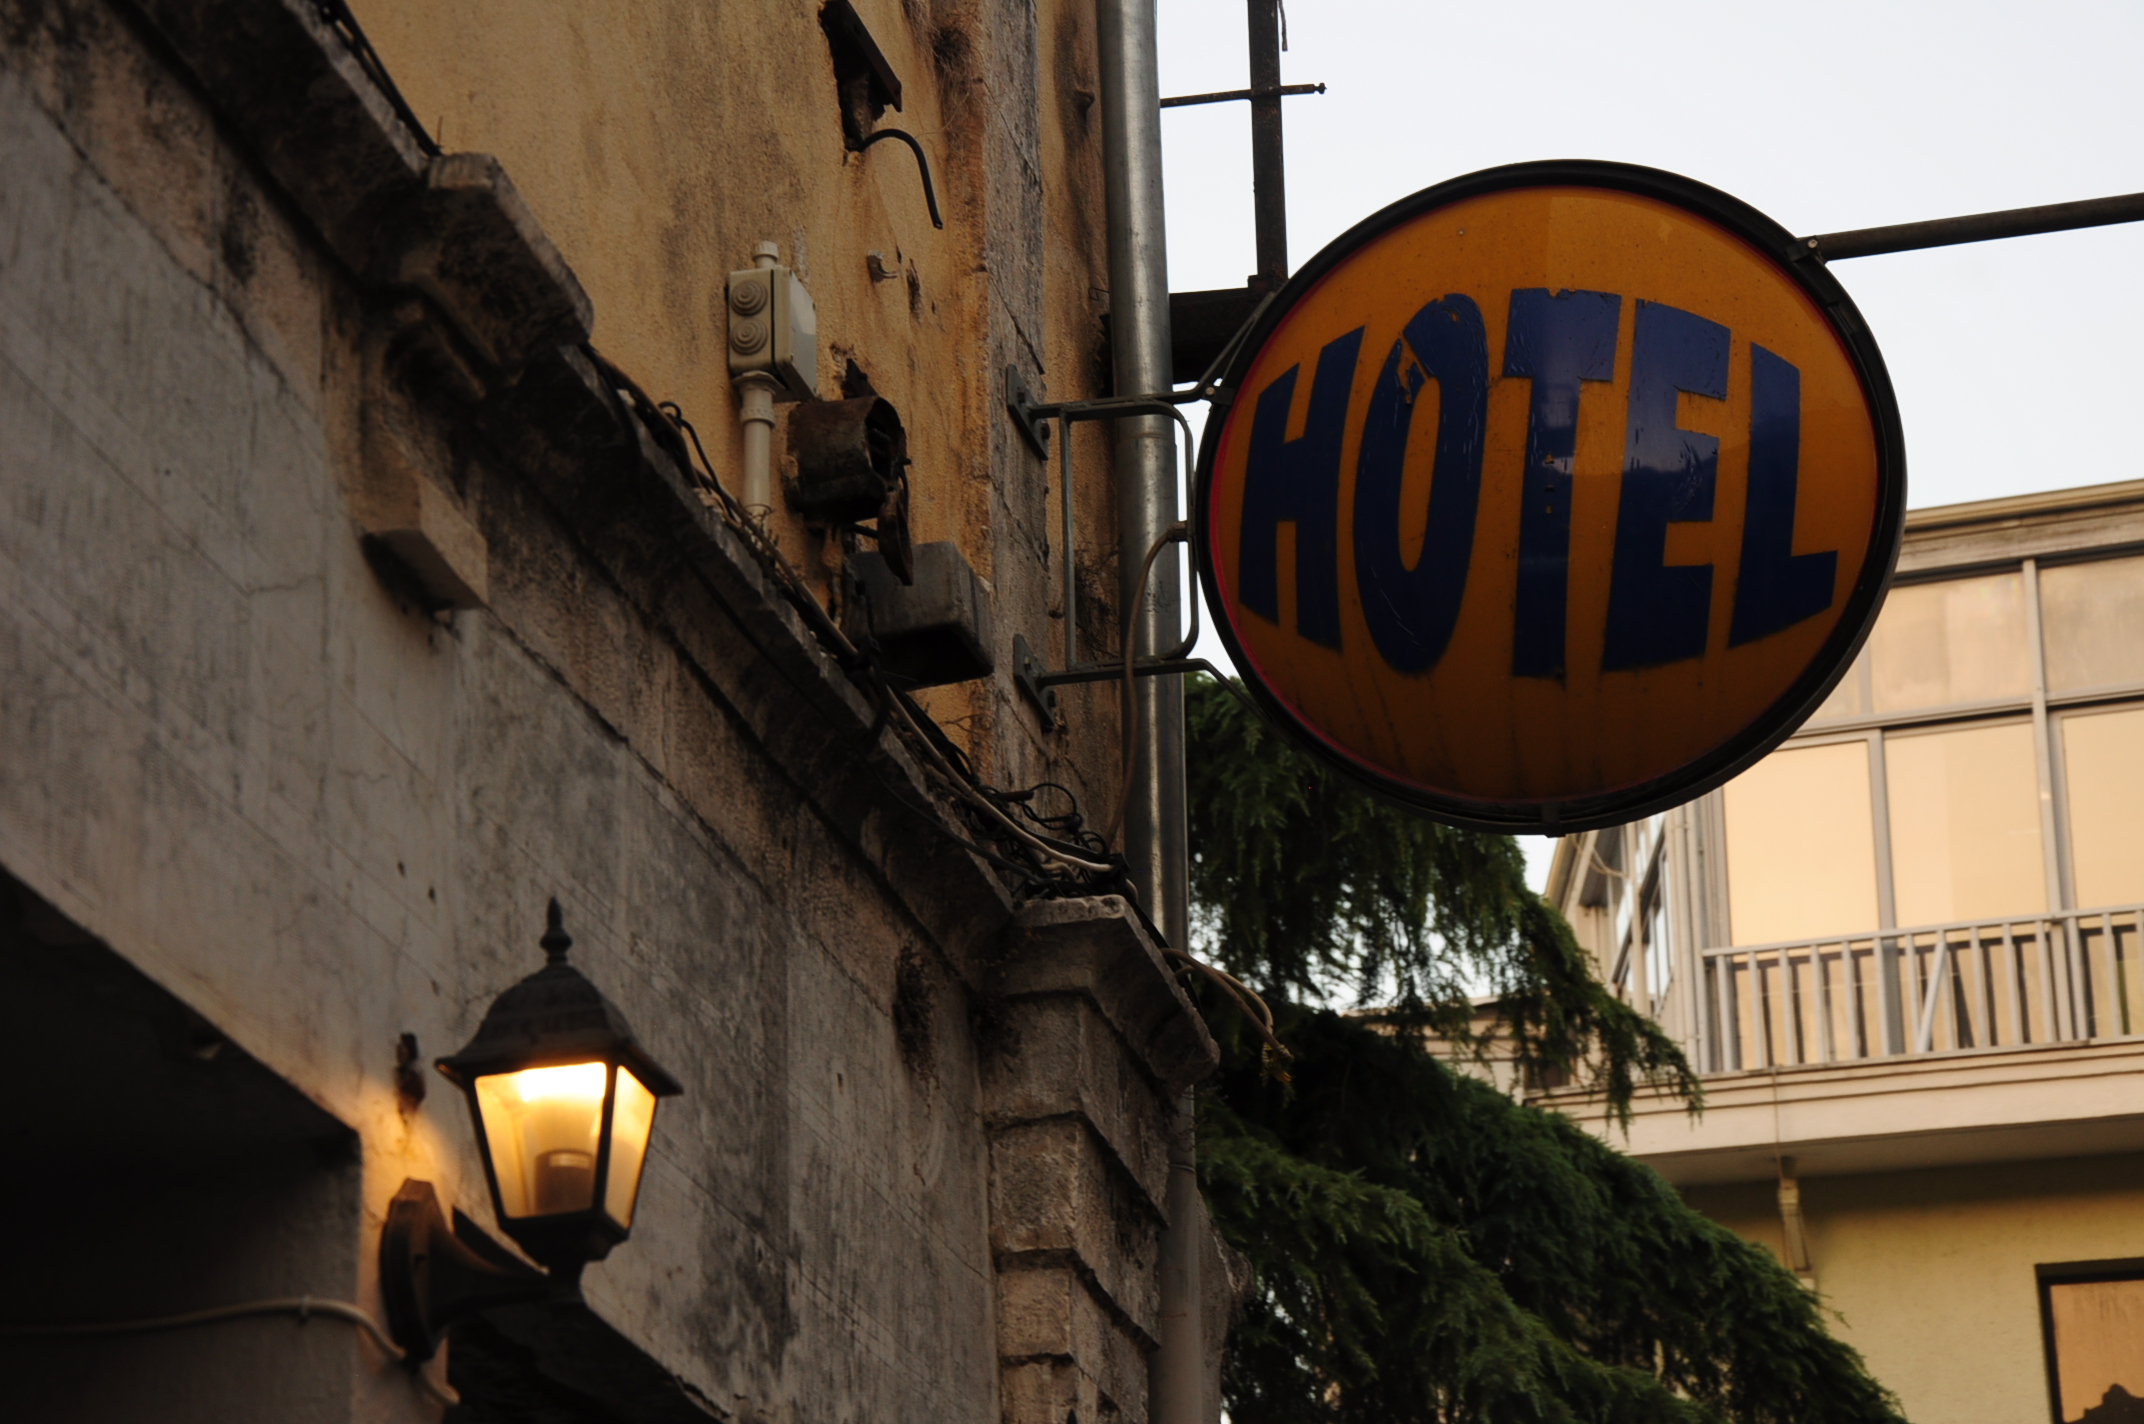 A nice old hotel sign in the old town